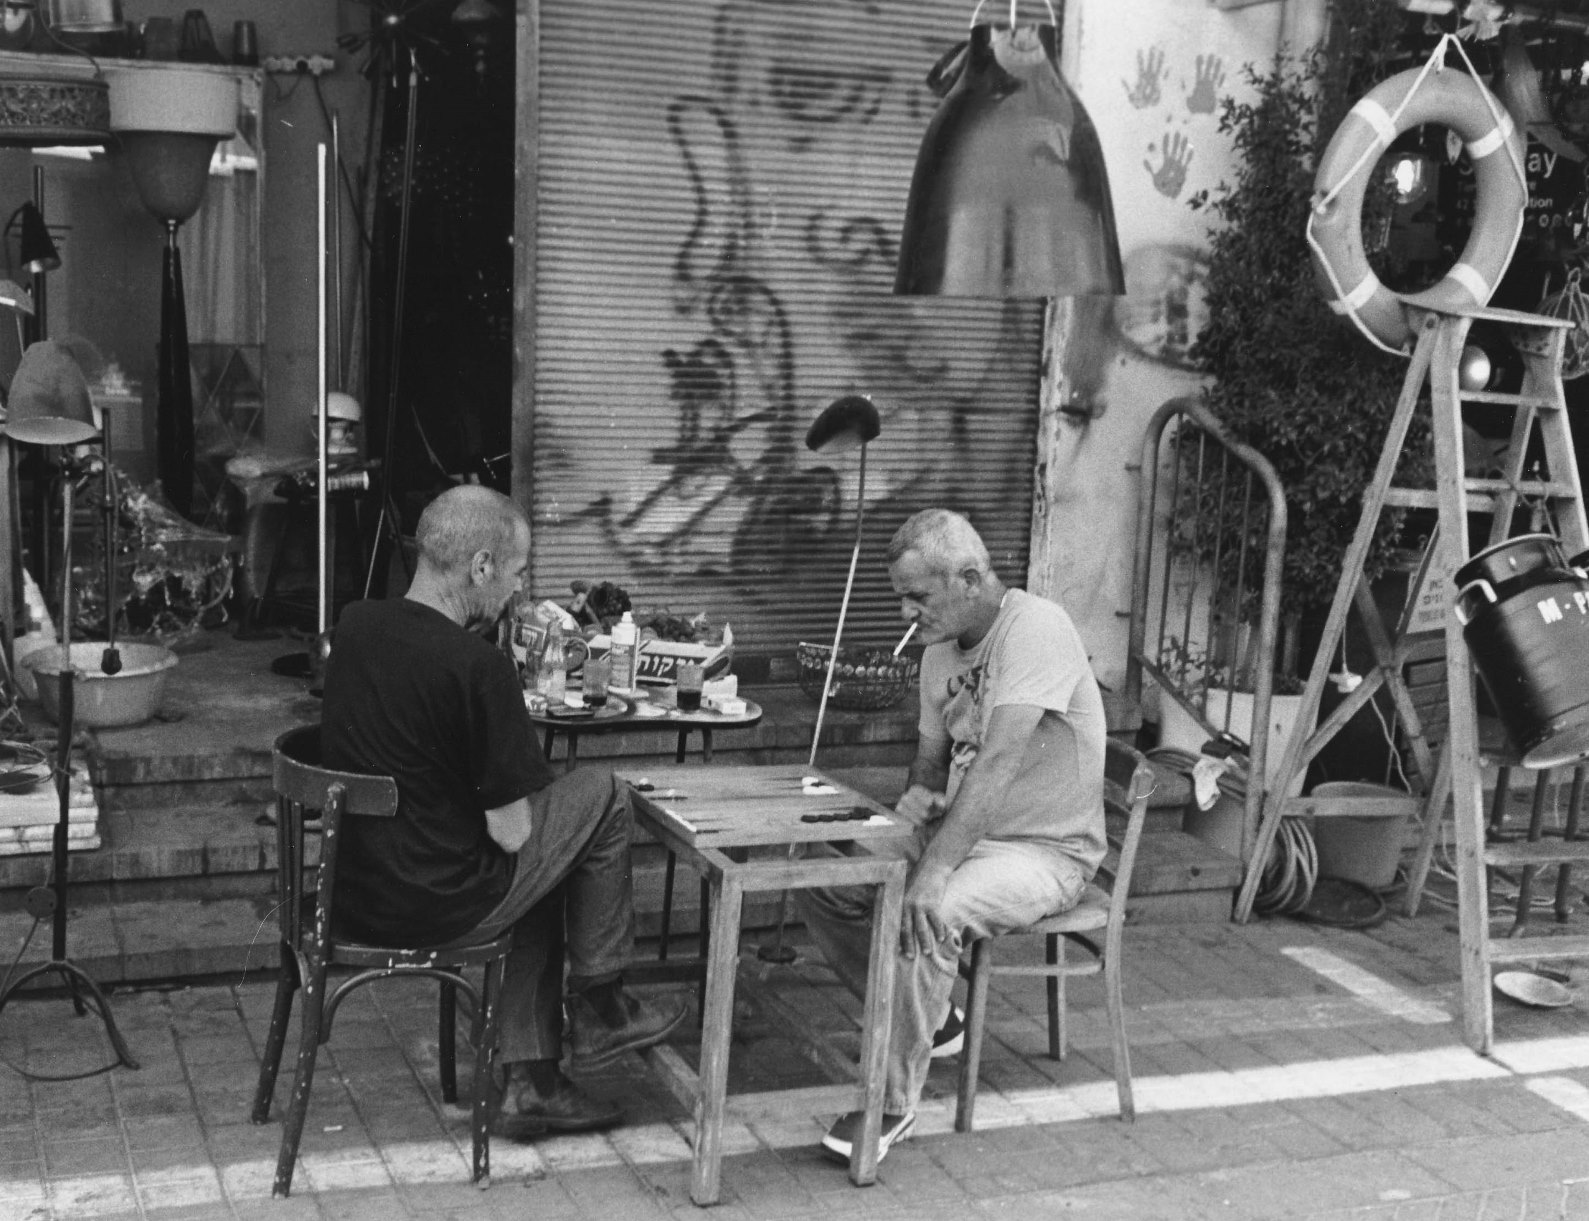 Backgammon players in Old Jaffa. Photo by Paul Margolis